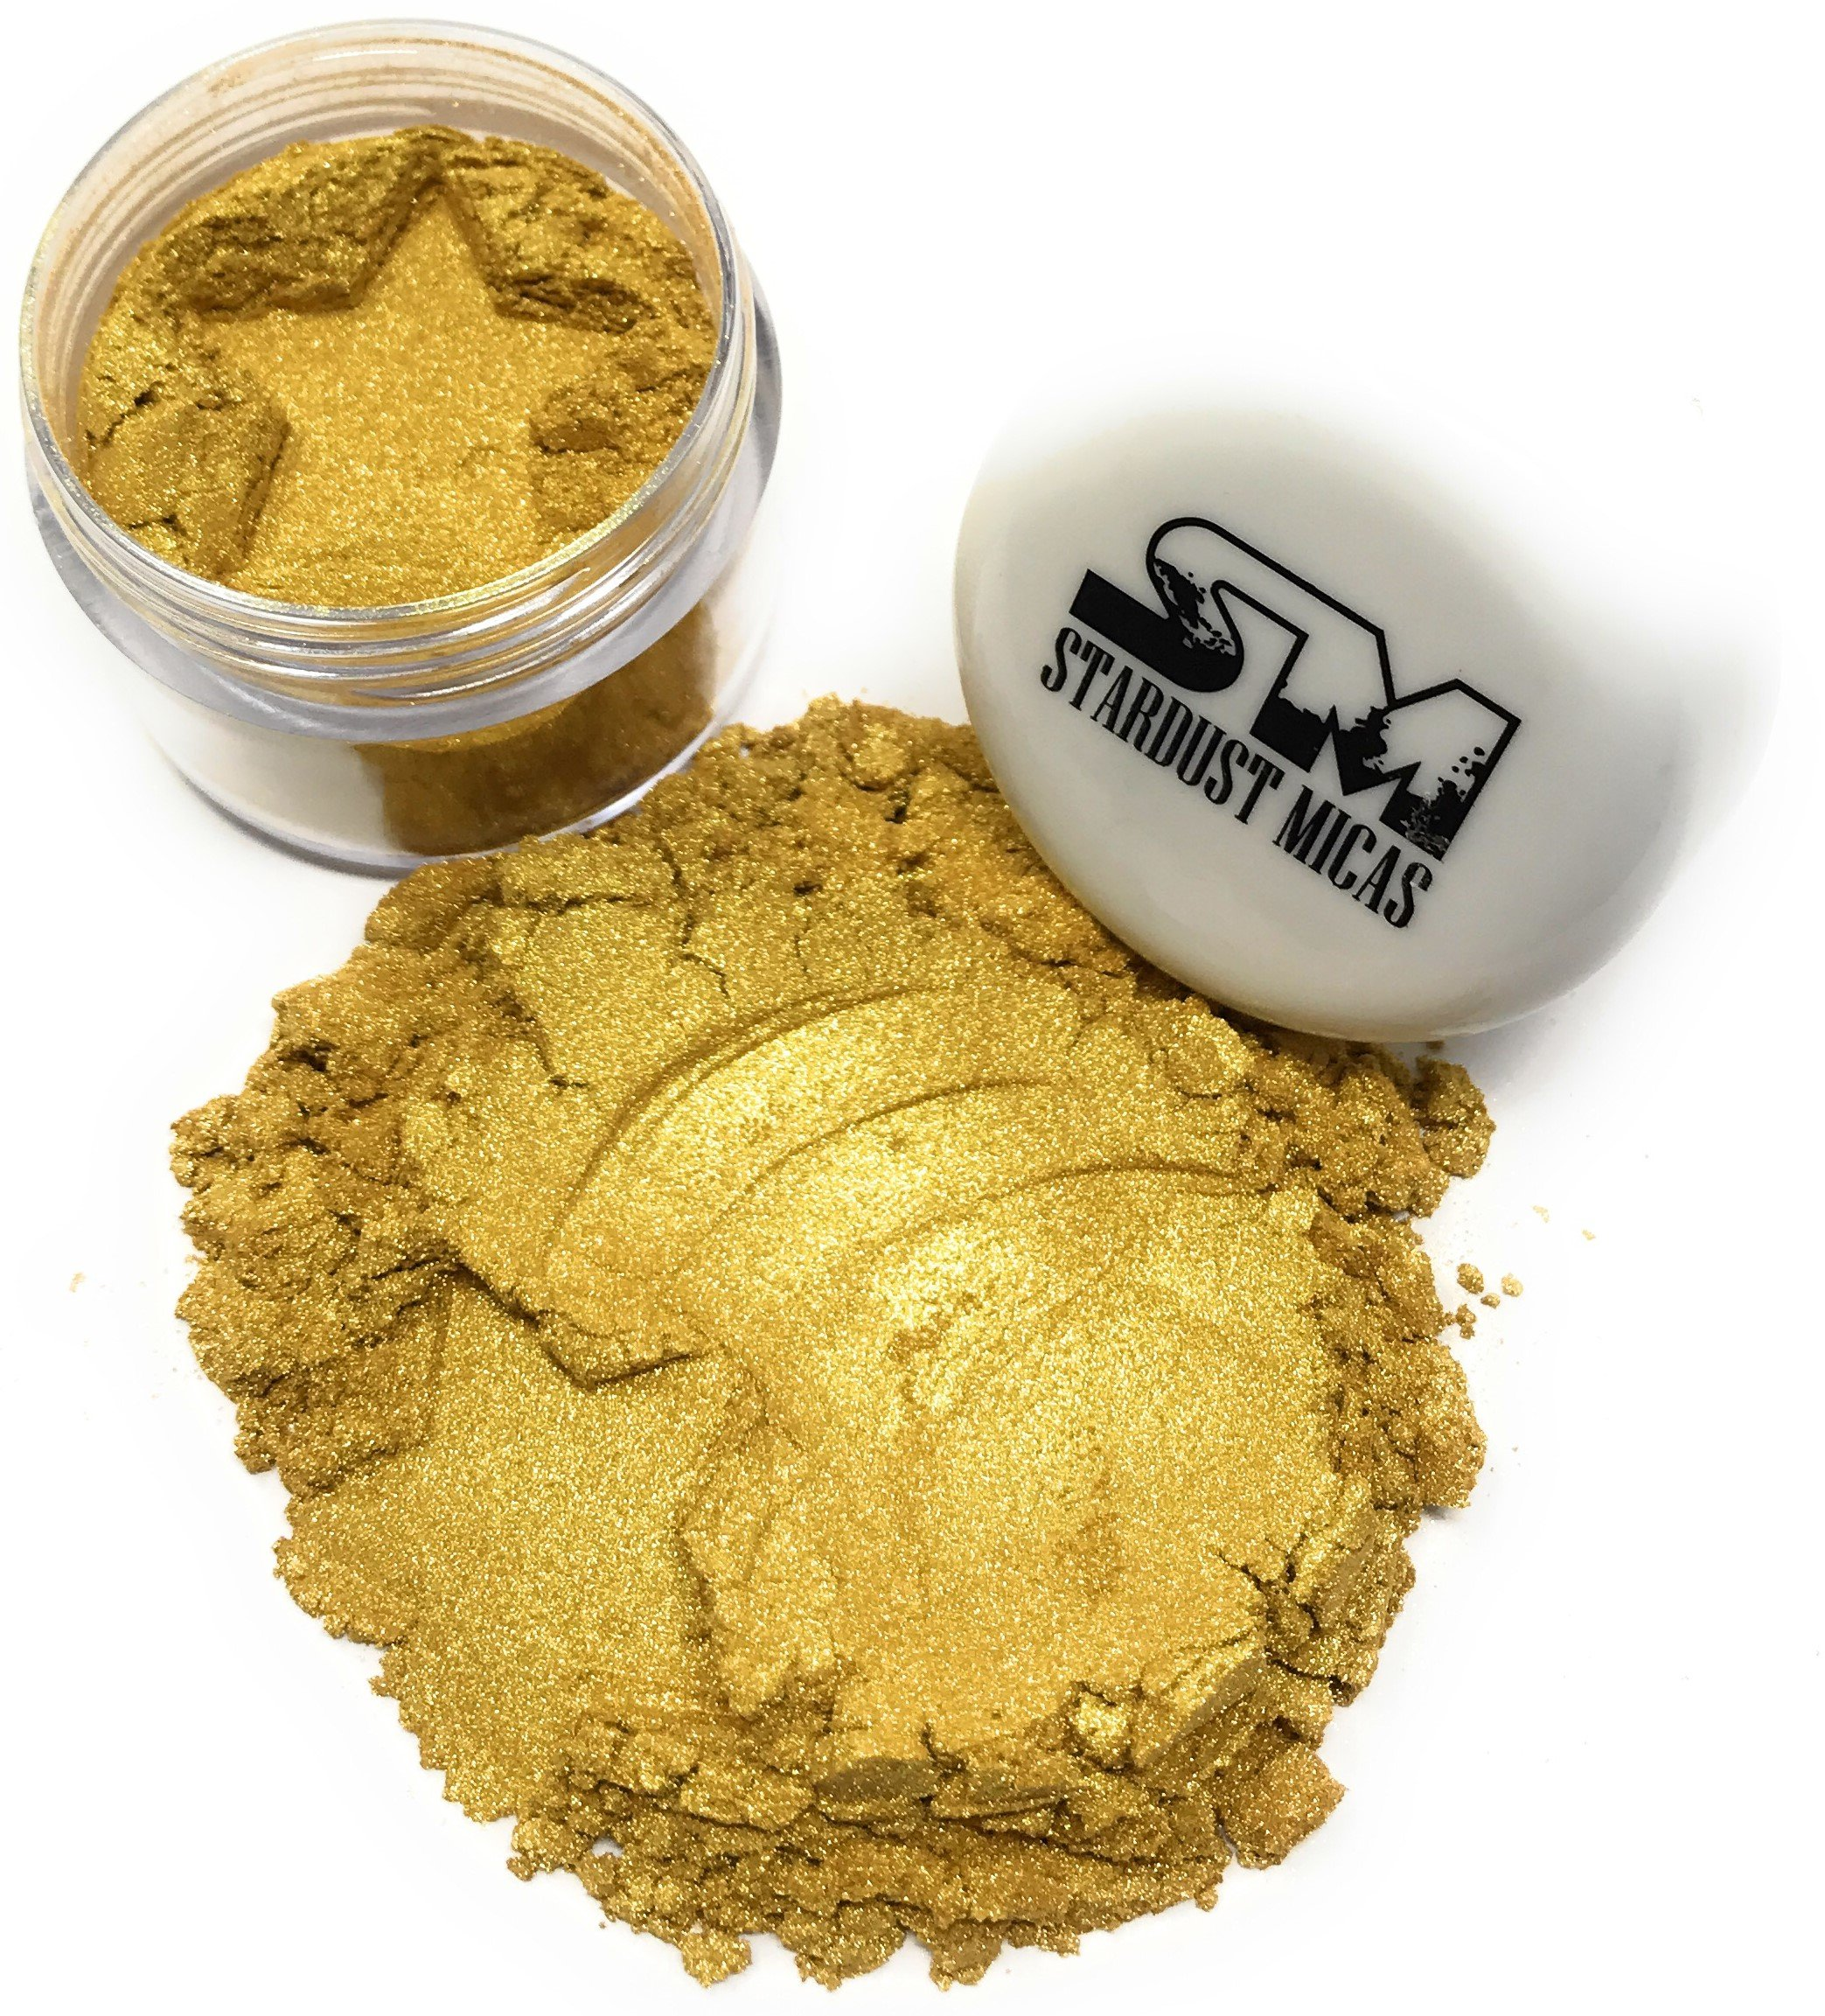 Stardust Micas Pigment Powder Cosmetic Grade Colorant for Makeup, Soap Making, Bath Bombs, DIY Crafting Projects, Bright True Colors Stable Mica Batch Consistency Queens Gold